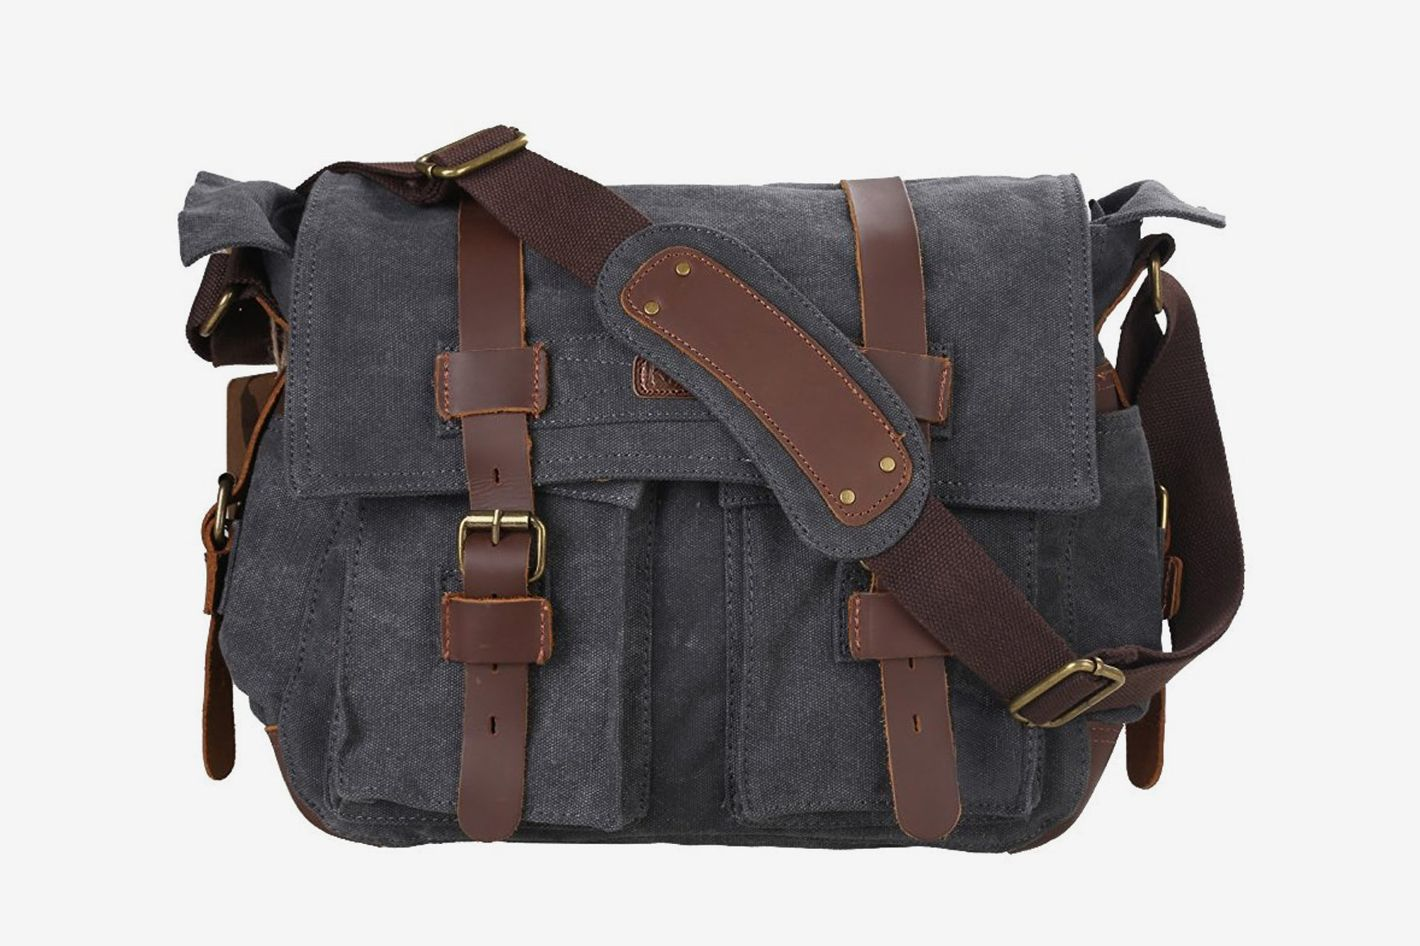 3a164fdf2b9e Kattee Leather Canvas Camera Bag Vintage DSLR SLR Messenger Shoulder Bag at  Amazon. Buy · Modoker Vintage Laptop Backpack ...